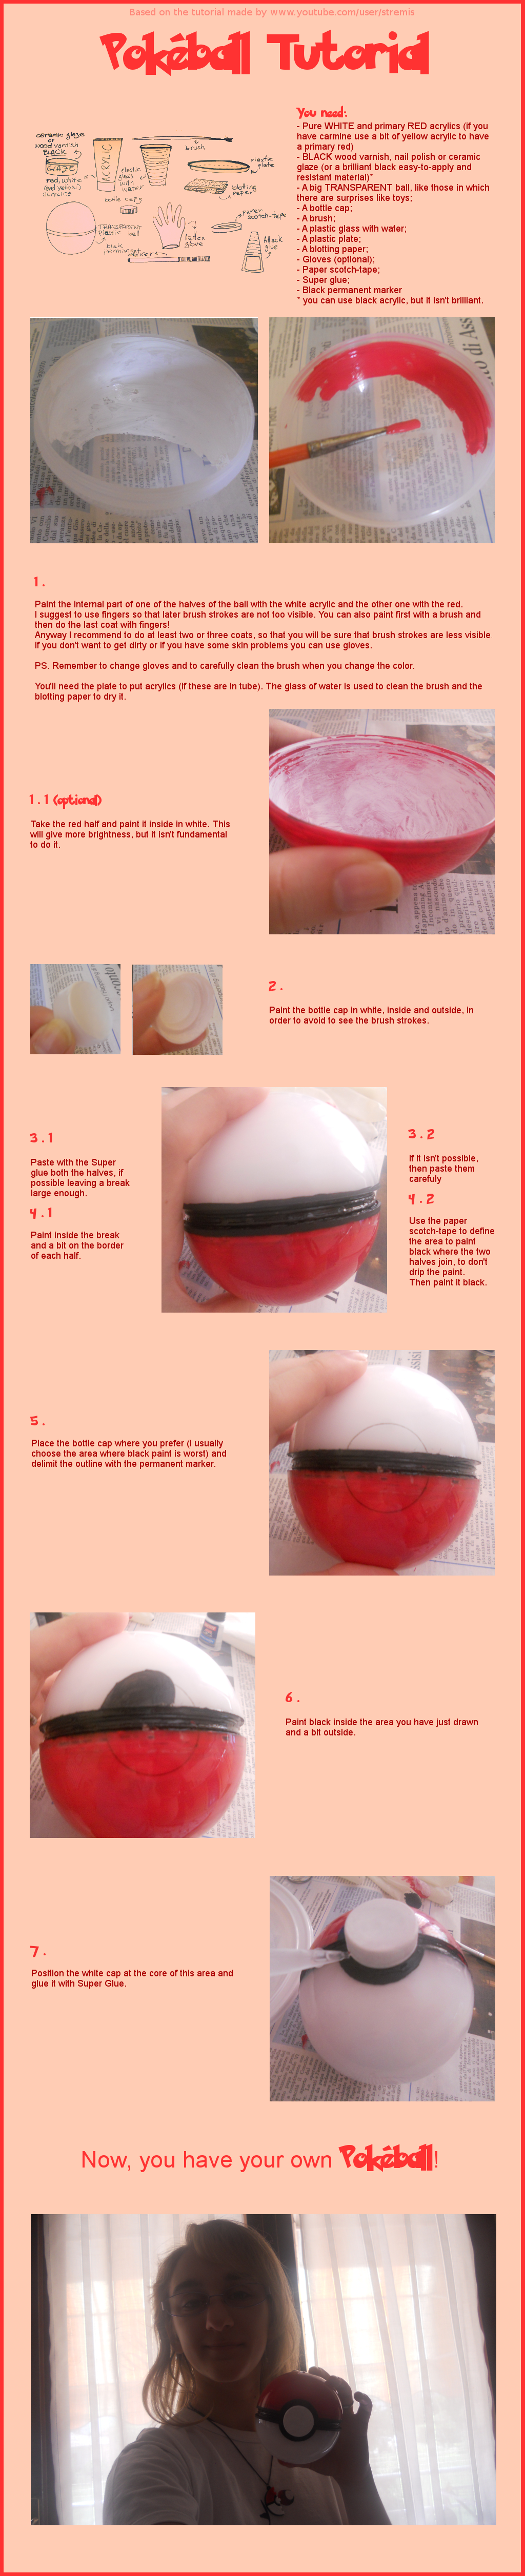 Pokeball tutorial by InvisibleJune